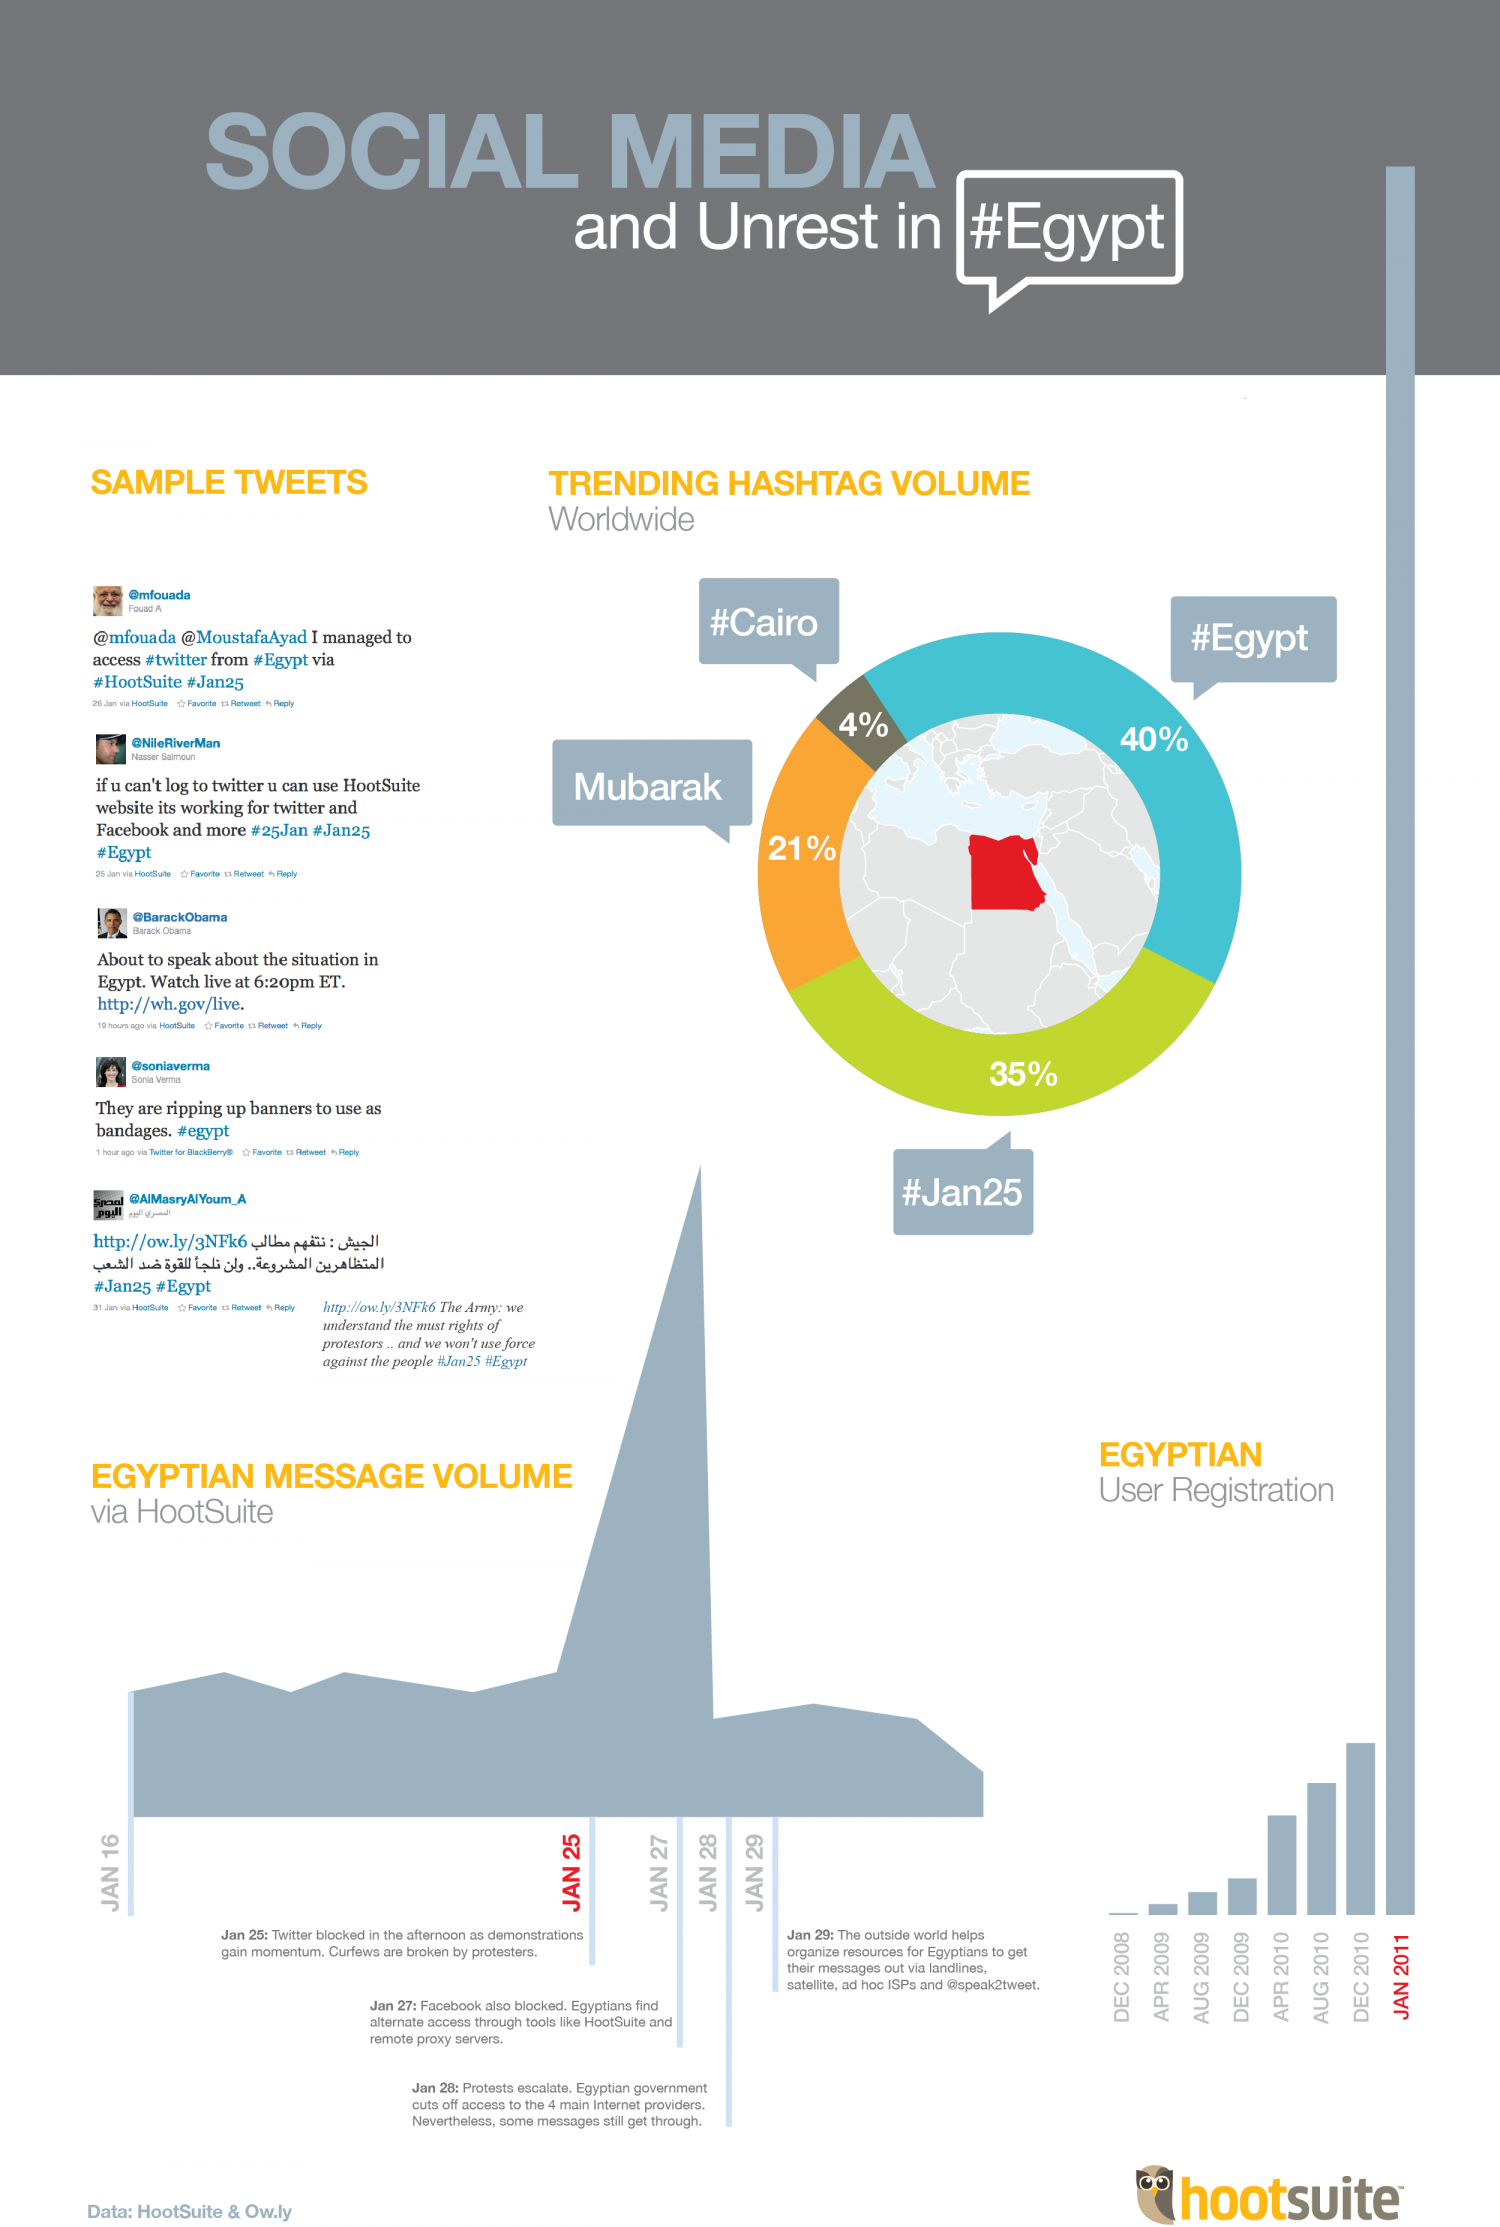 Social Media and Unrest in #Egypt Infographic